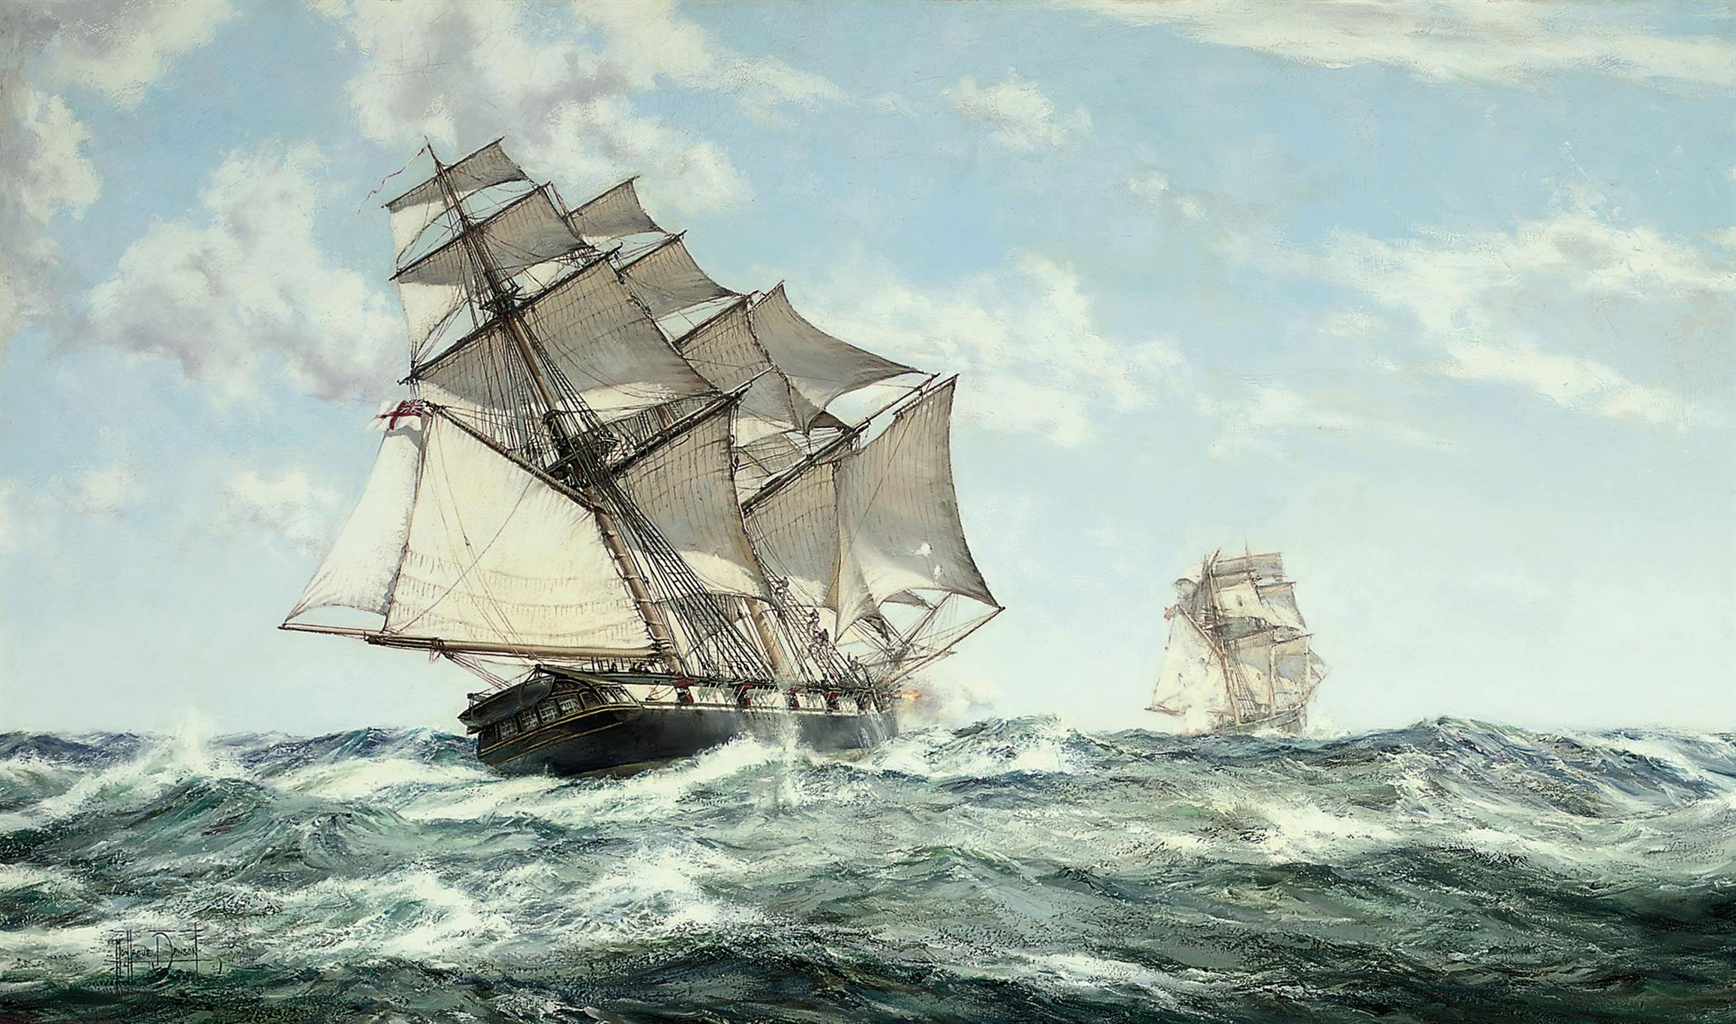 http://www.christies.com/lotfinder/paintings/montague-dawson-rsma-frsa-chasing-the-slaver-5387508-details.aspx